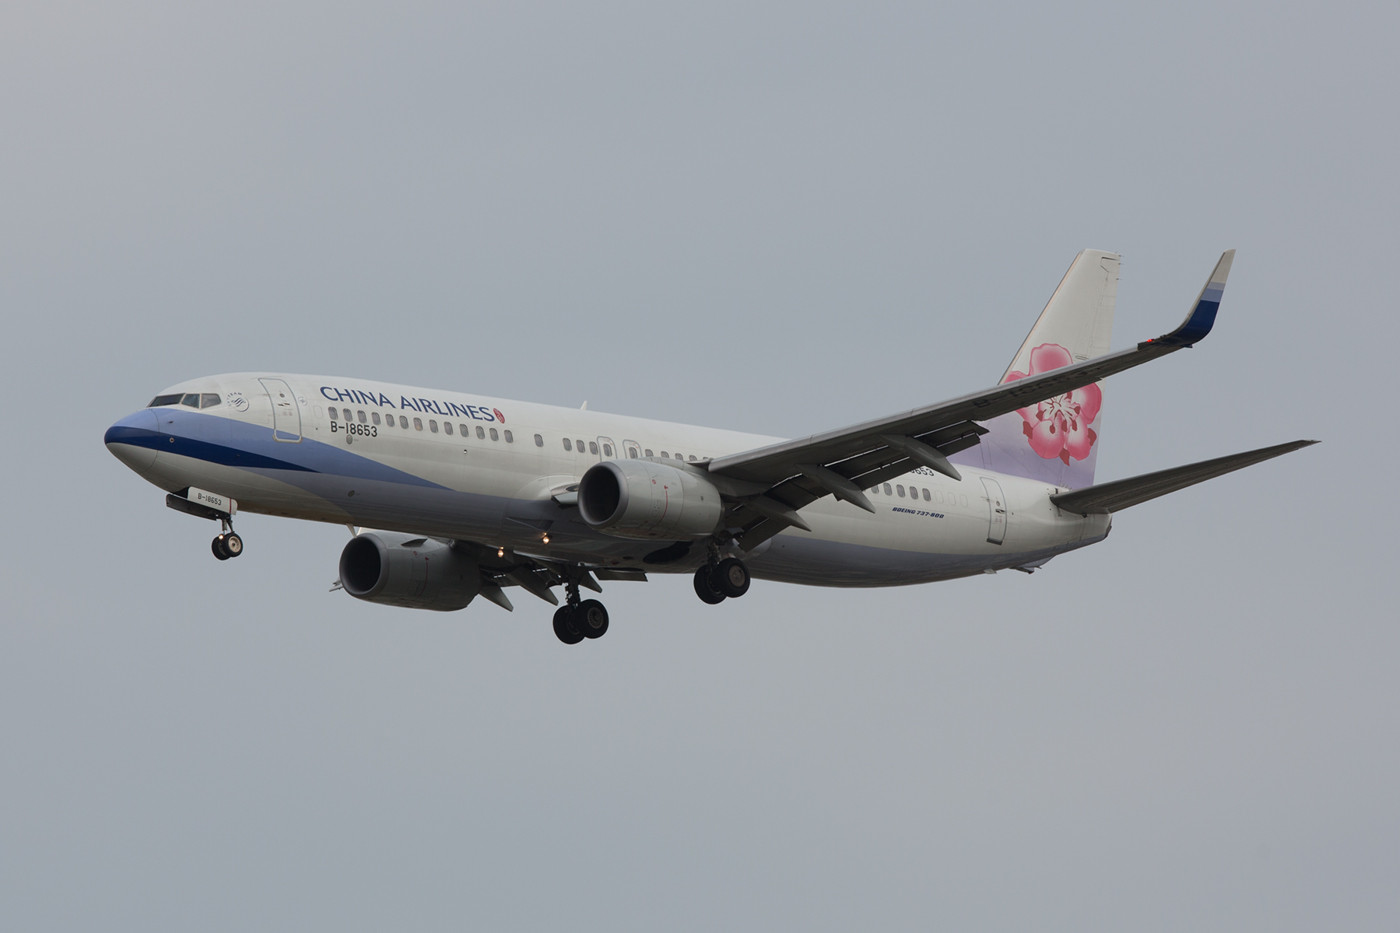 Boeing 737-800 der China Airlines.